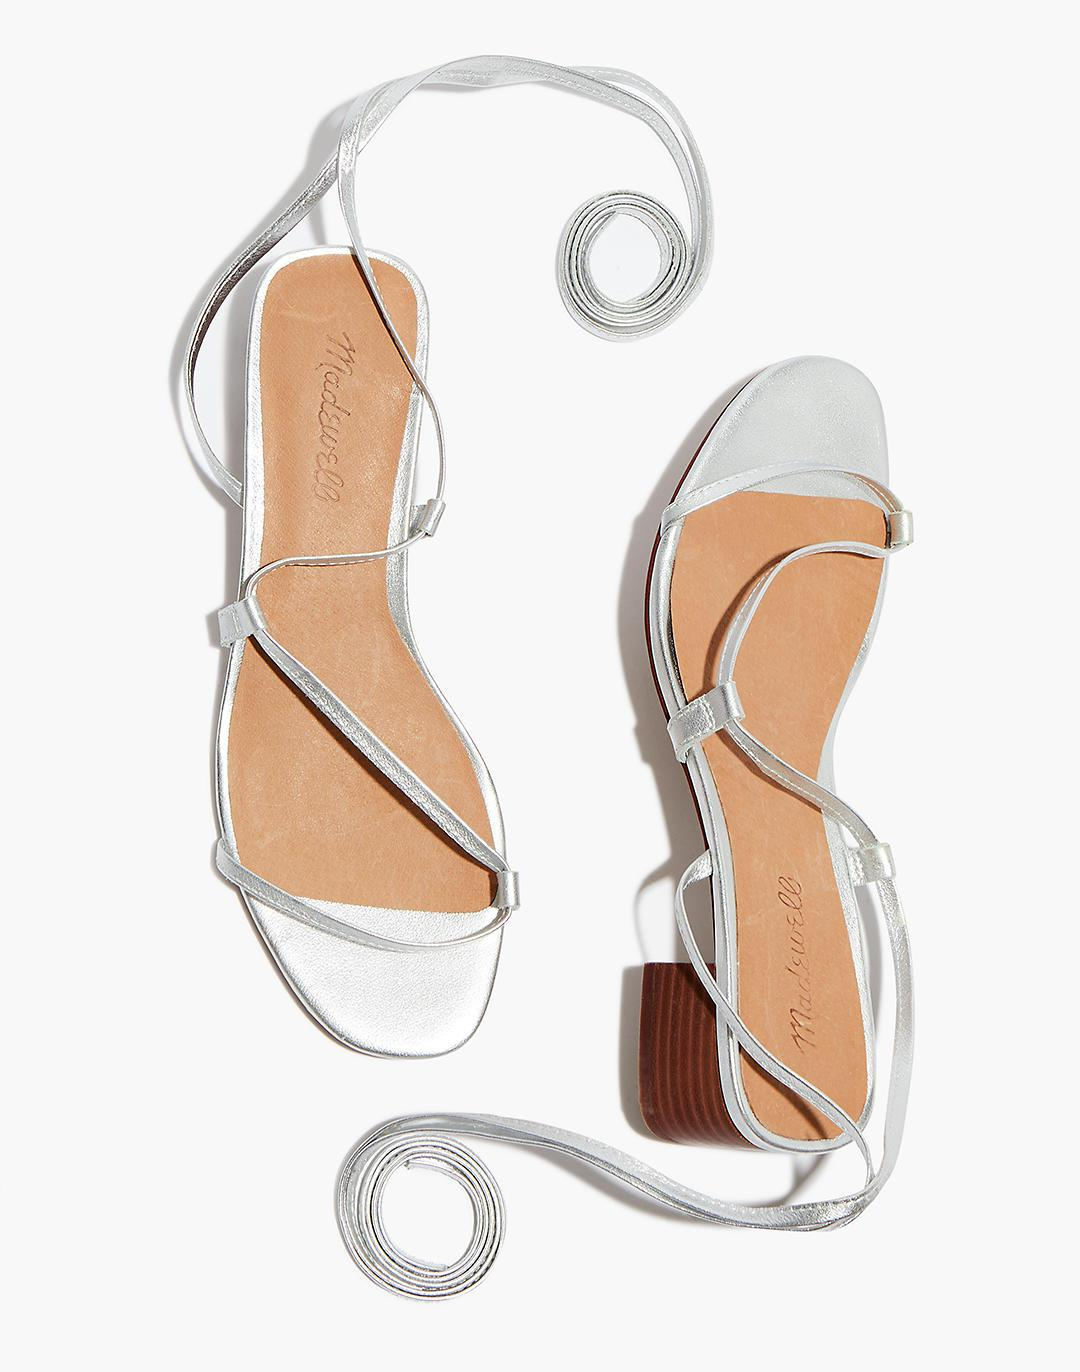 The Brigitte Lace-Up Sandal in Metallic Leather